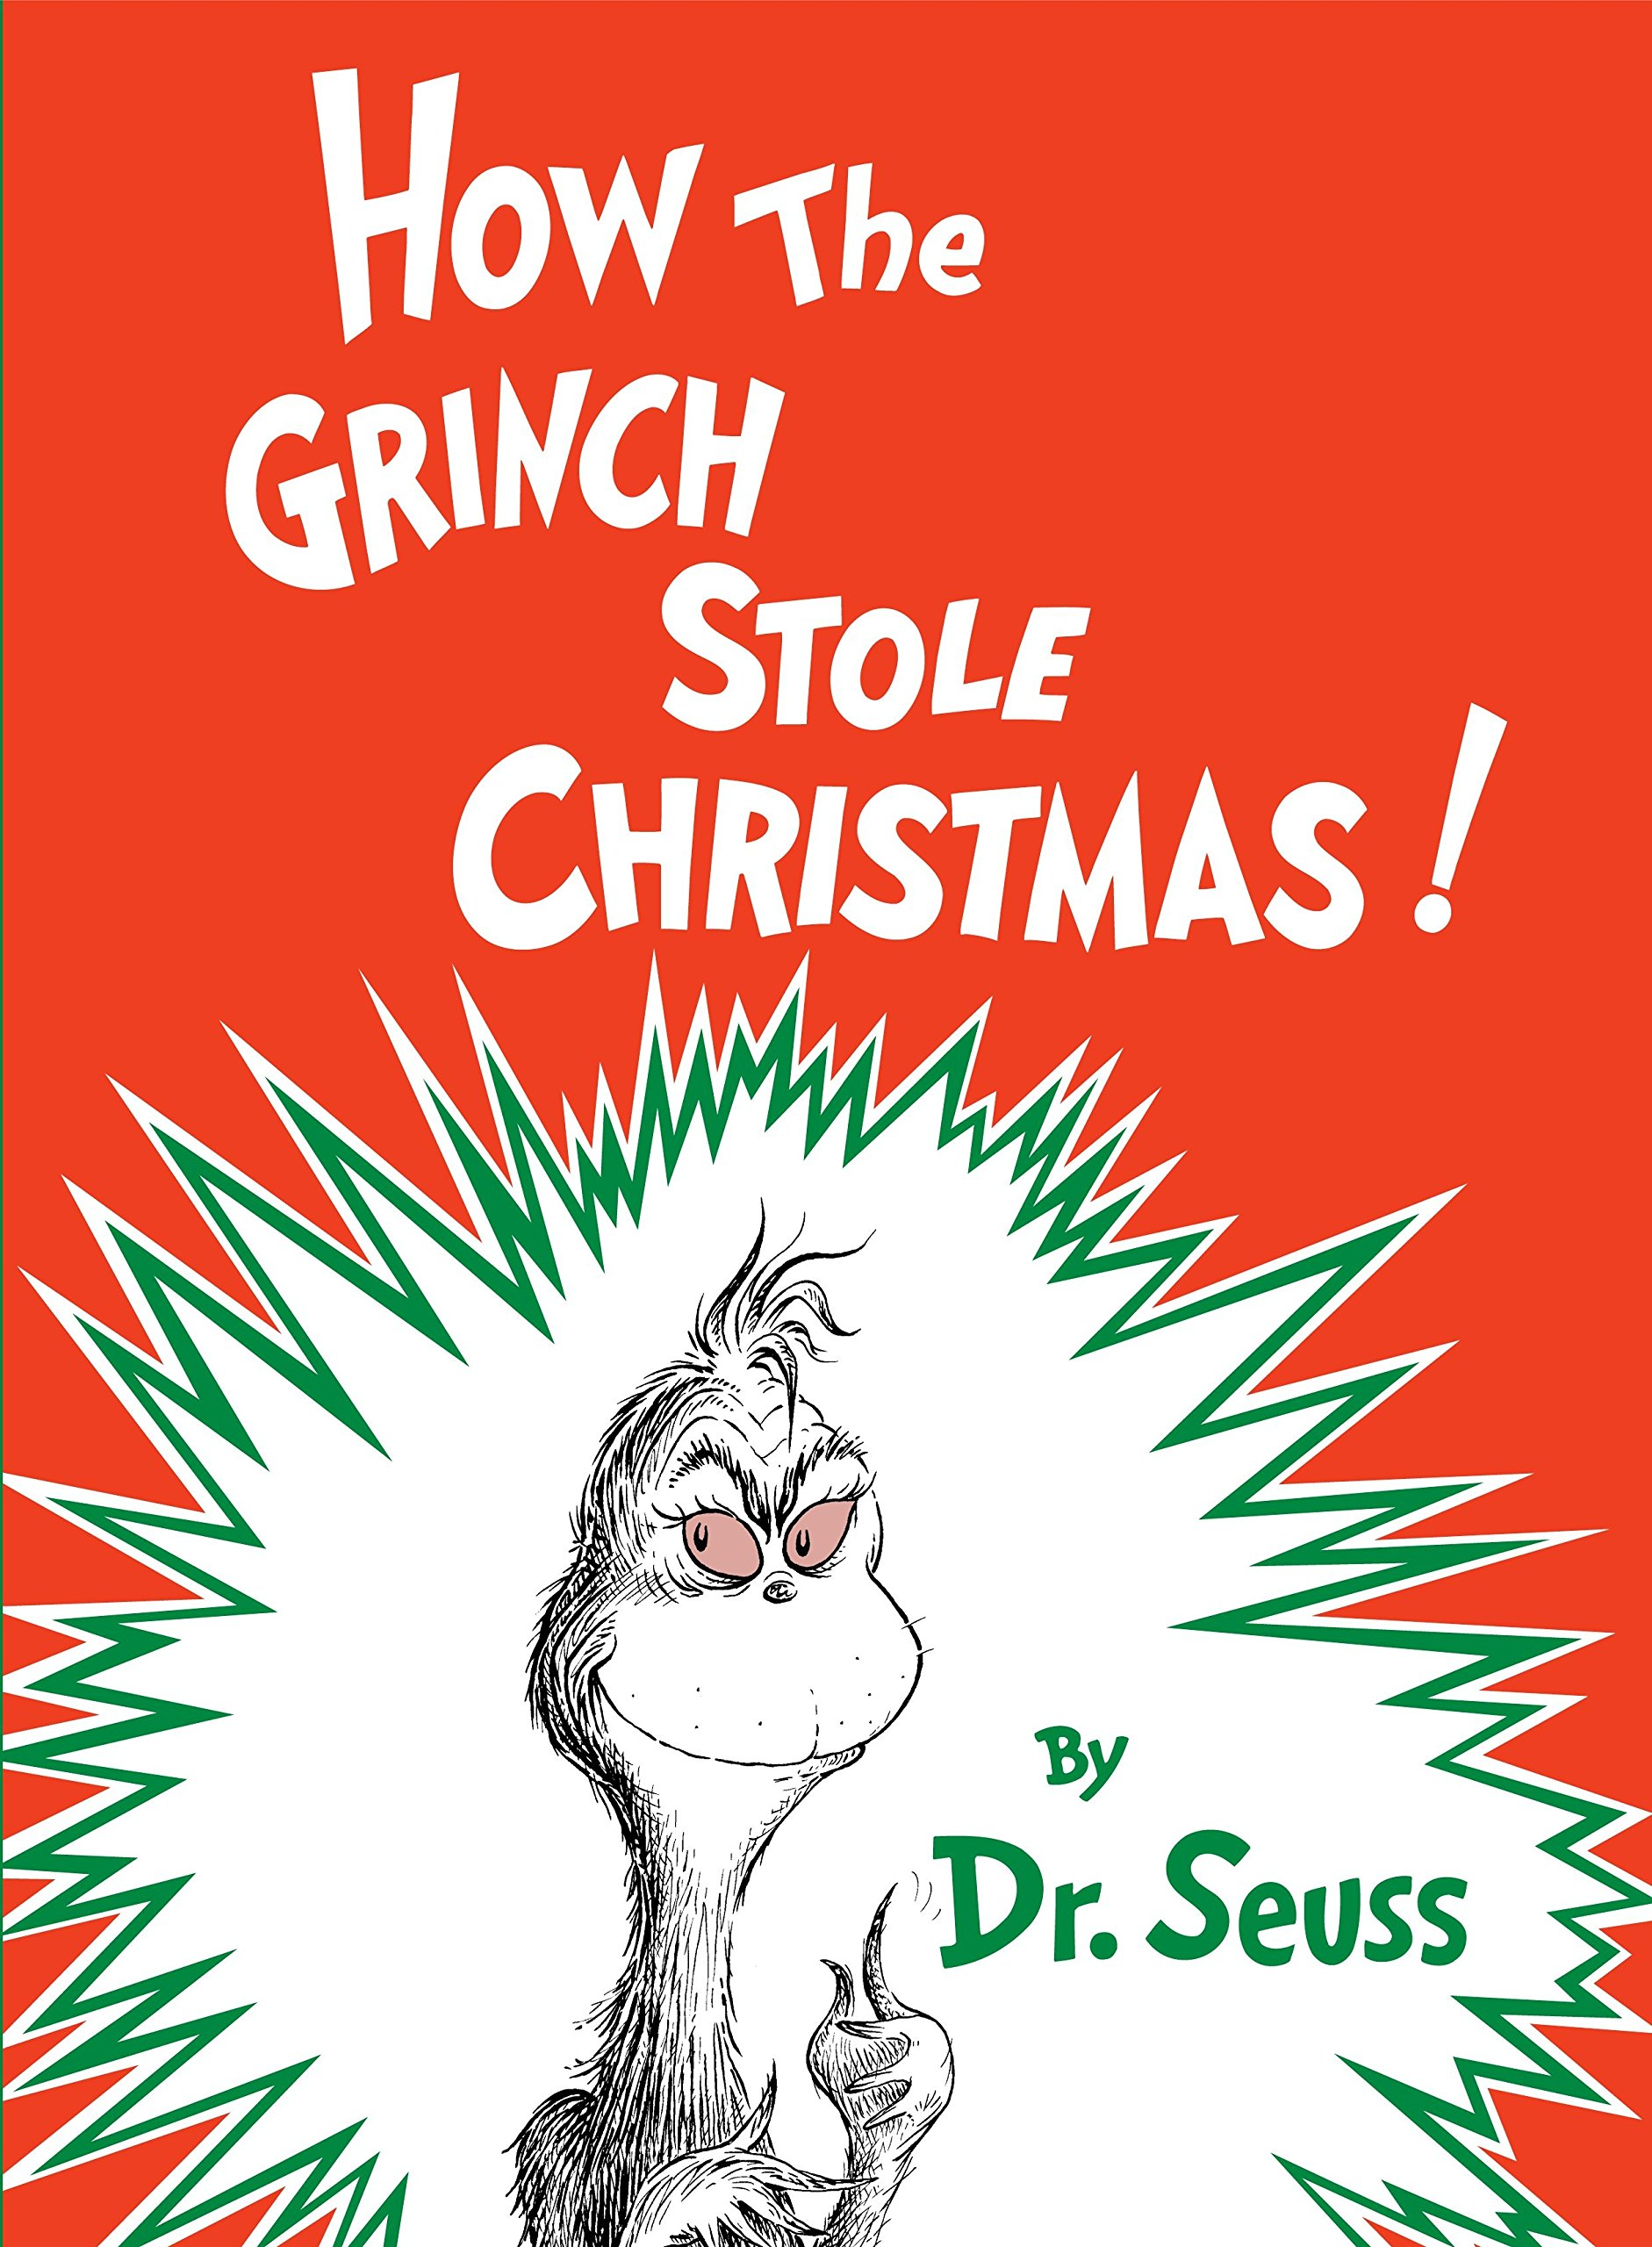 The Best Christmas Picture Books  - How the Grinch Stole Christmas.jpg